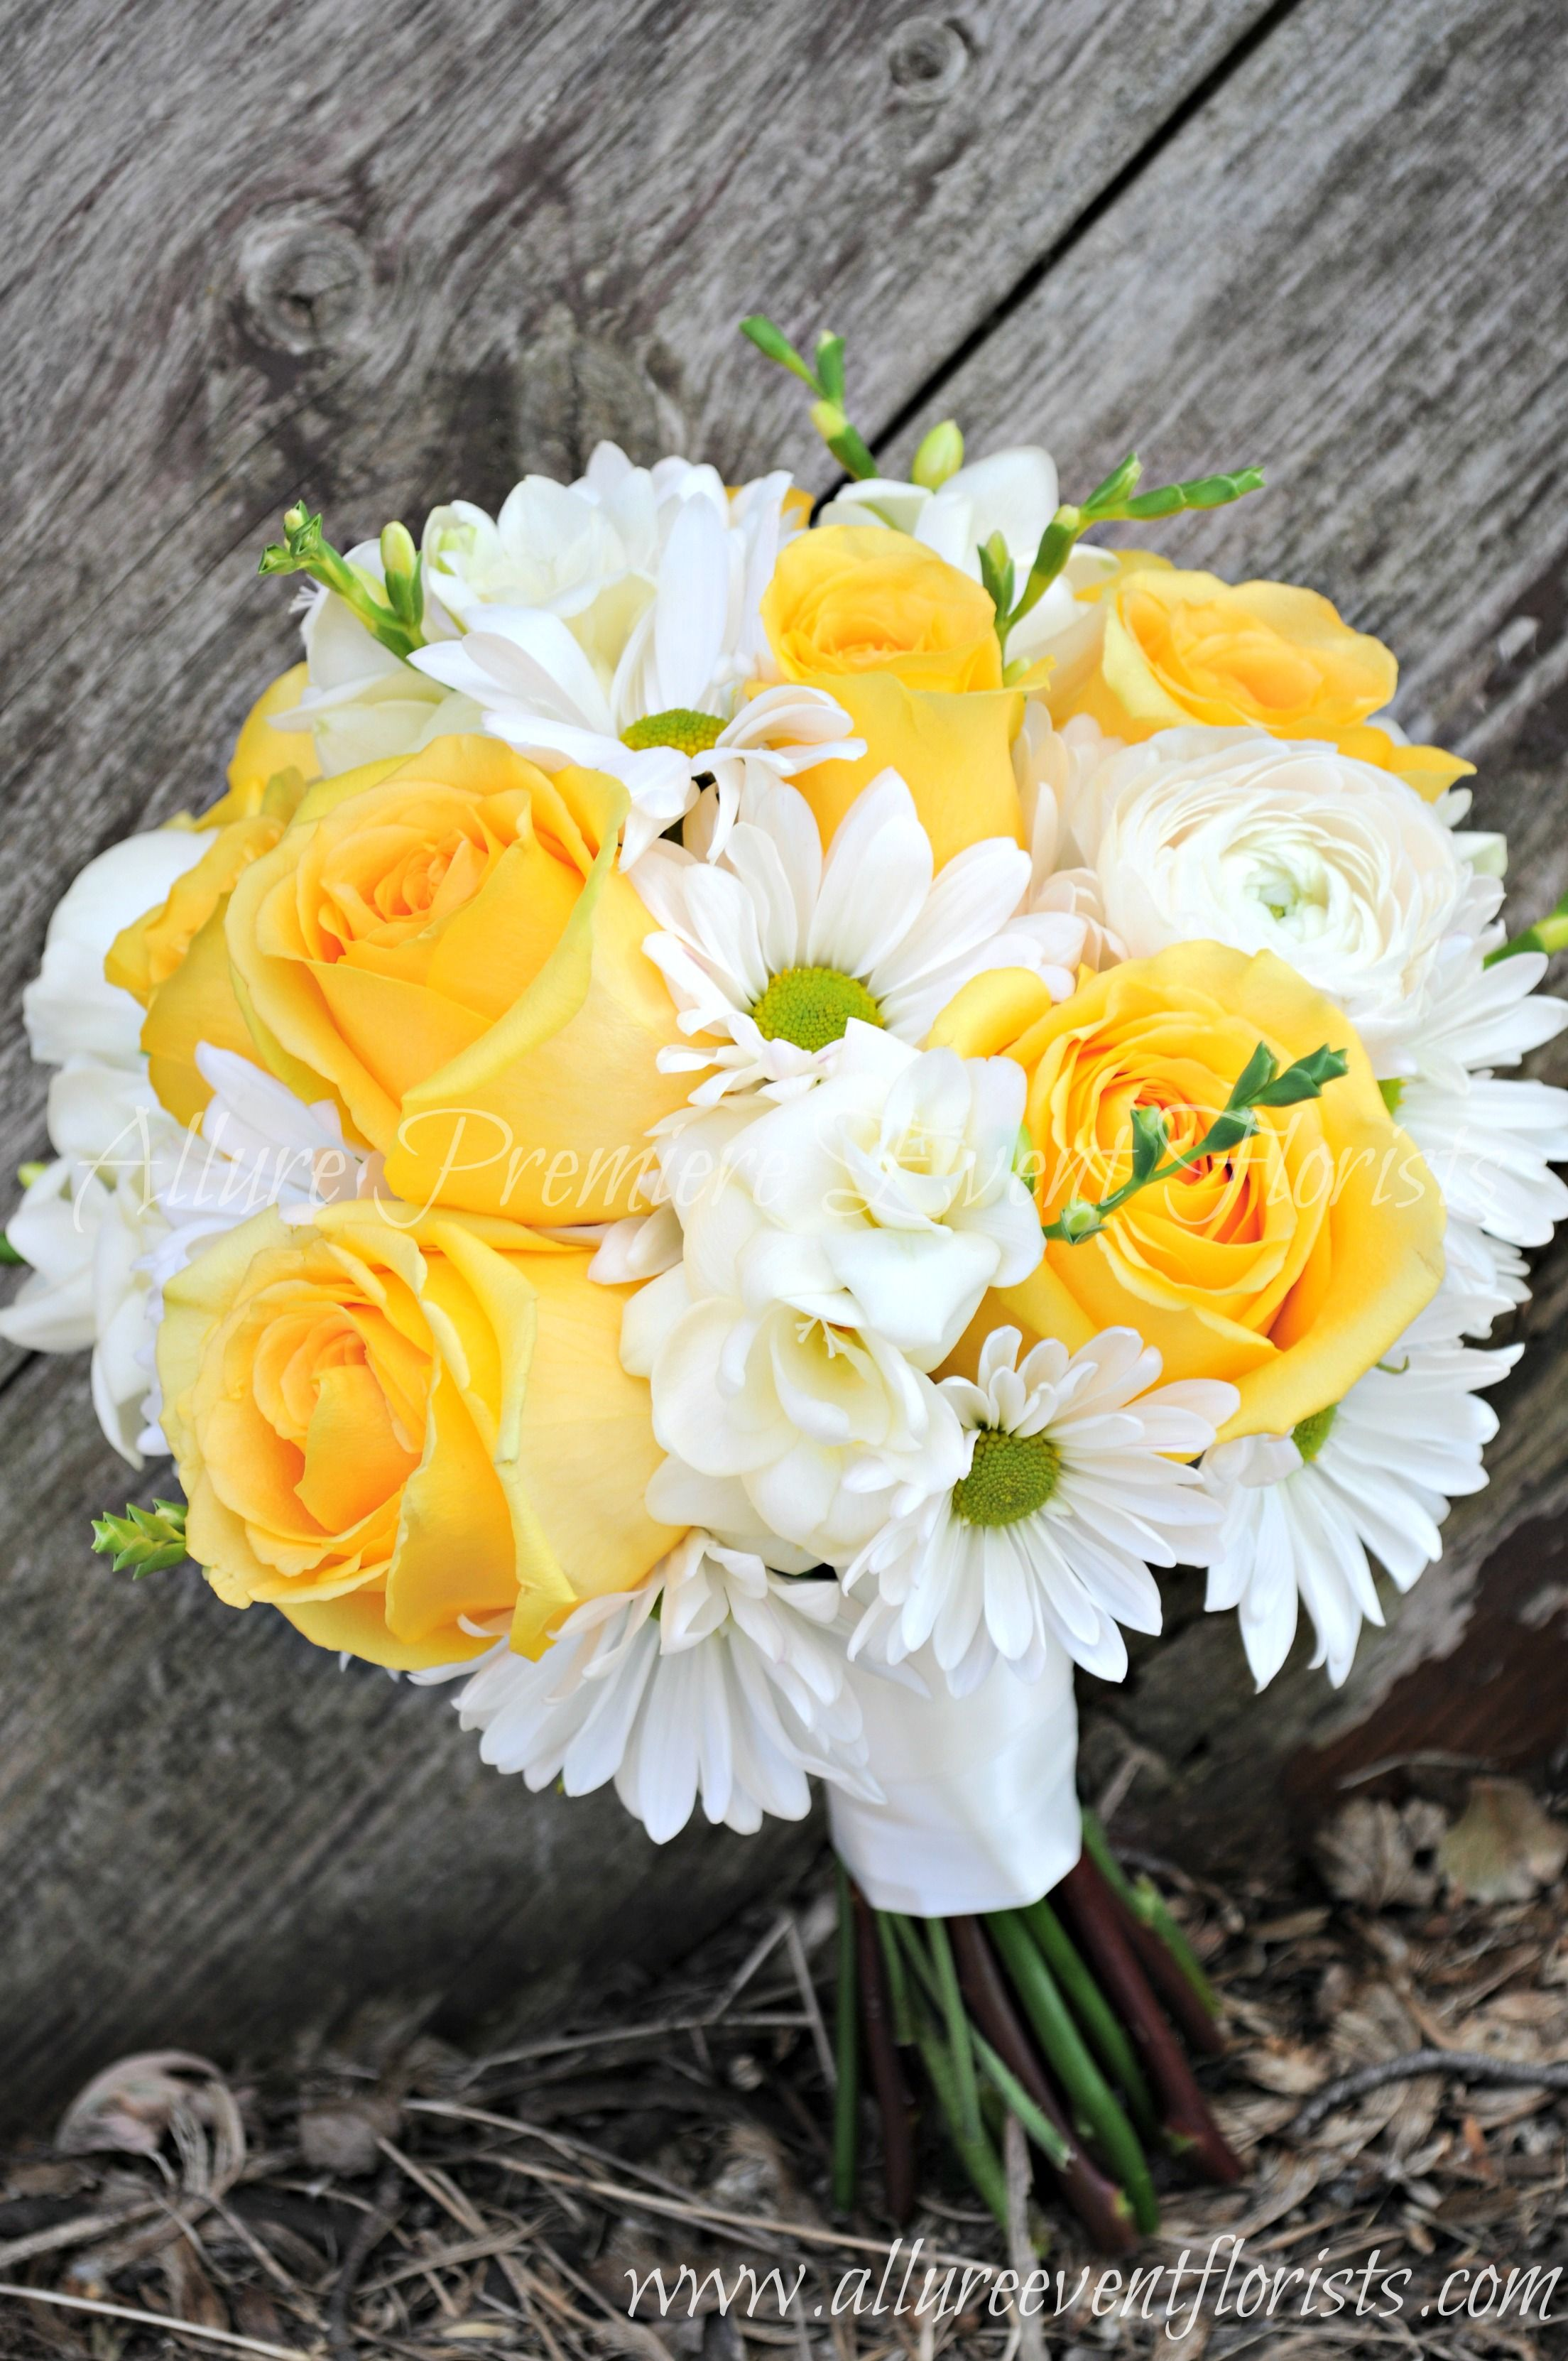 Vibrant Yellow Roses And White Daisies Sure To Make You